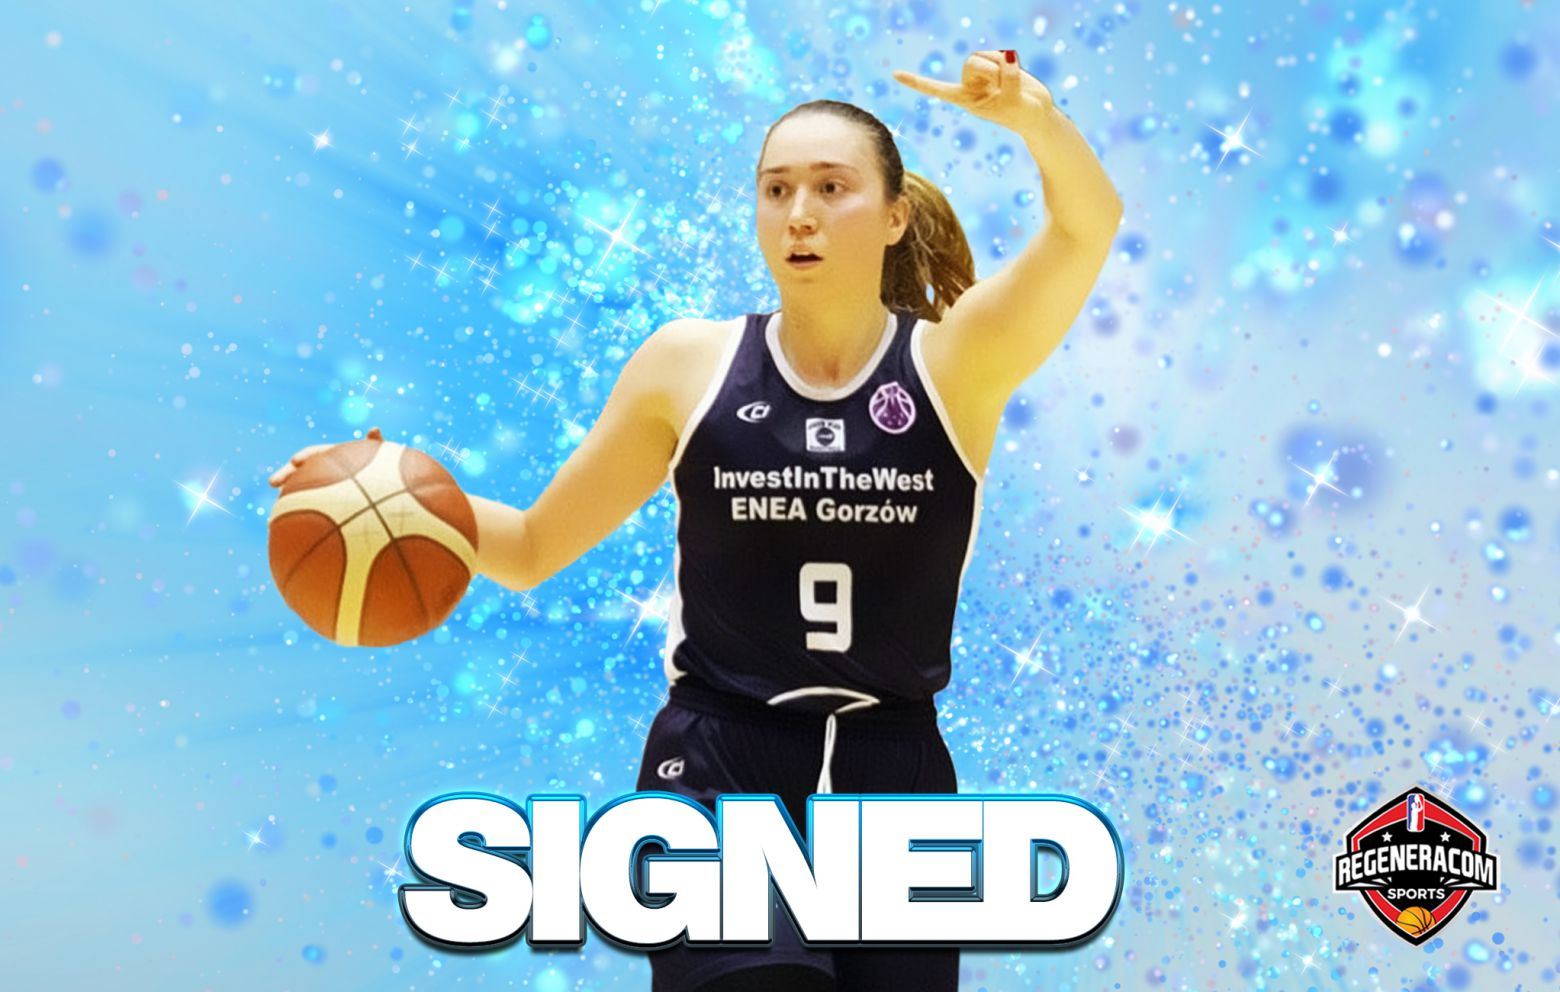 ANNAMARIA PREZELJ has signed with Regeneracom Sports